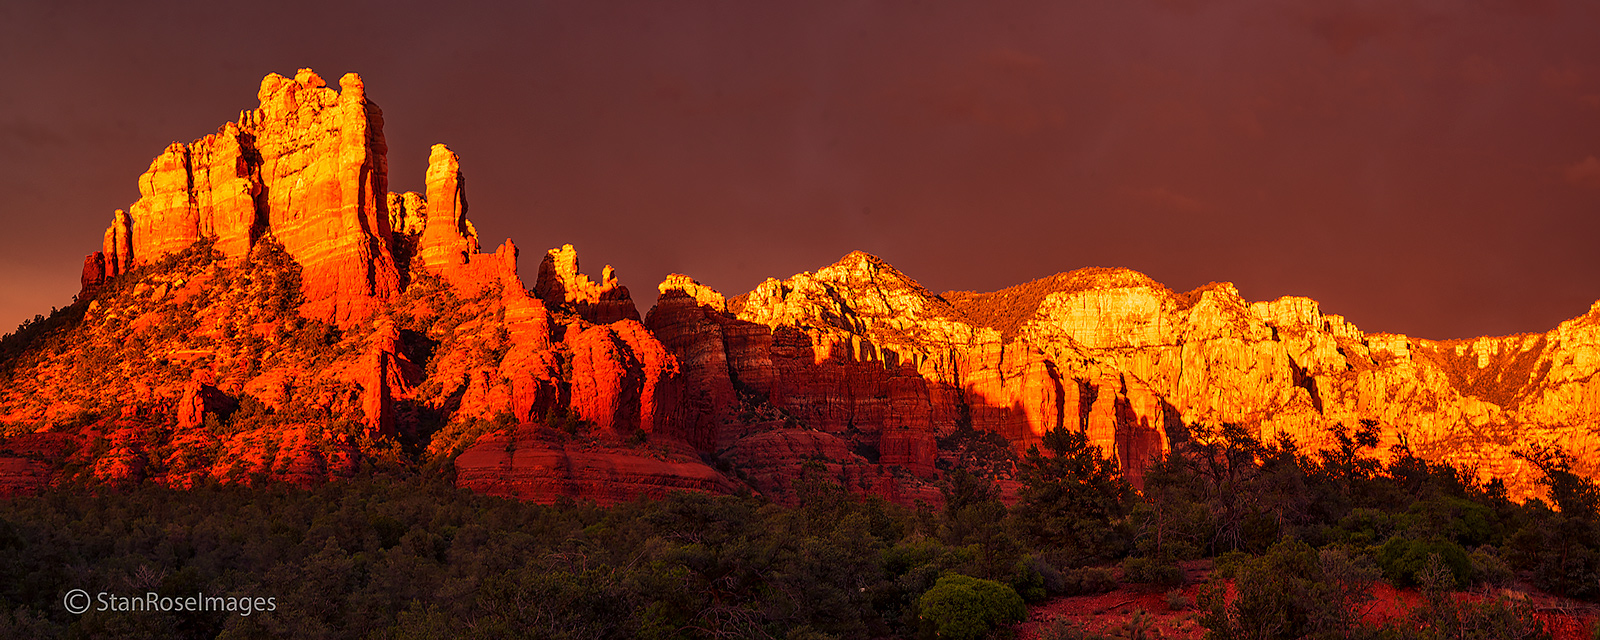 sunset, sedona, monsoon, arizona, photo